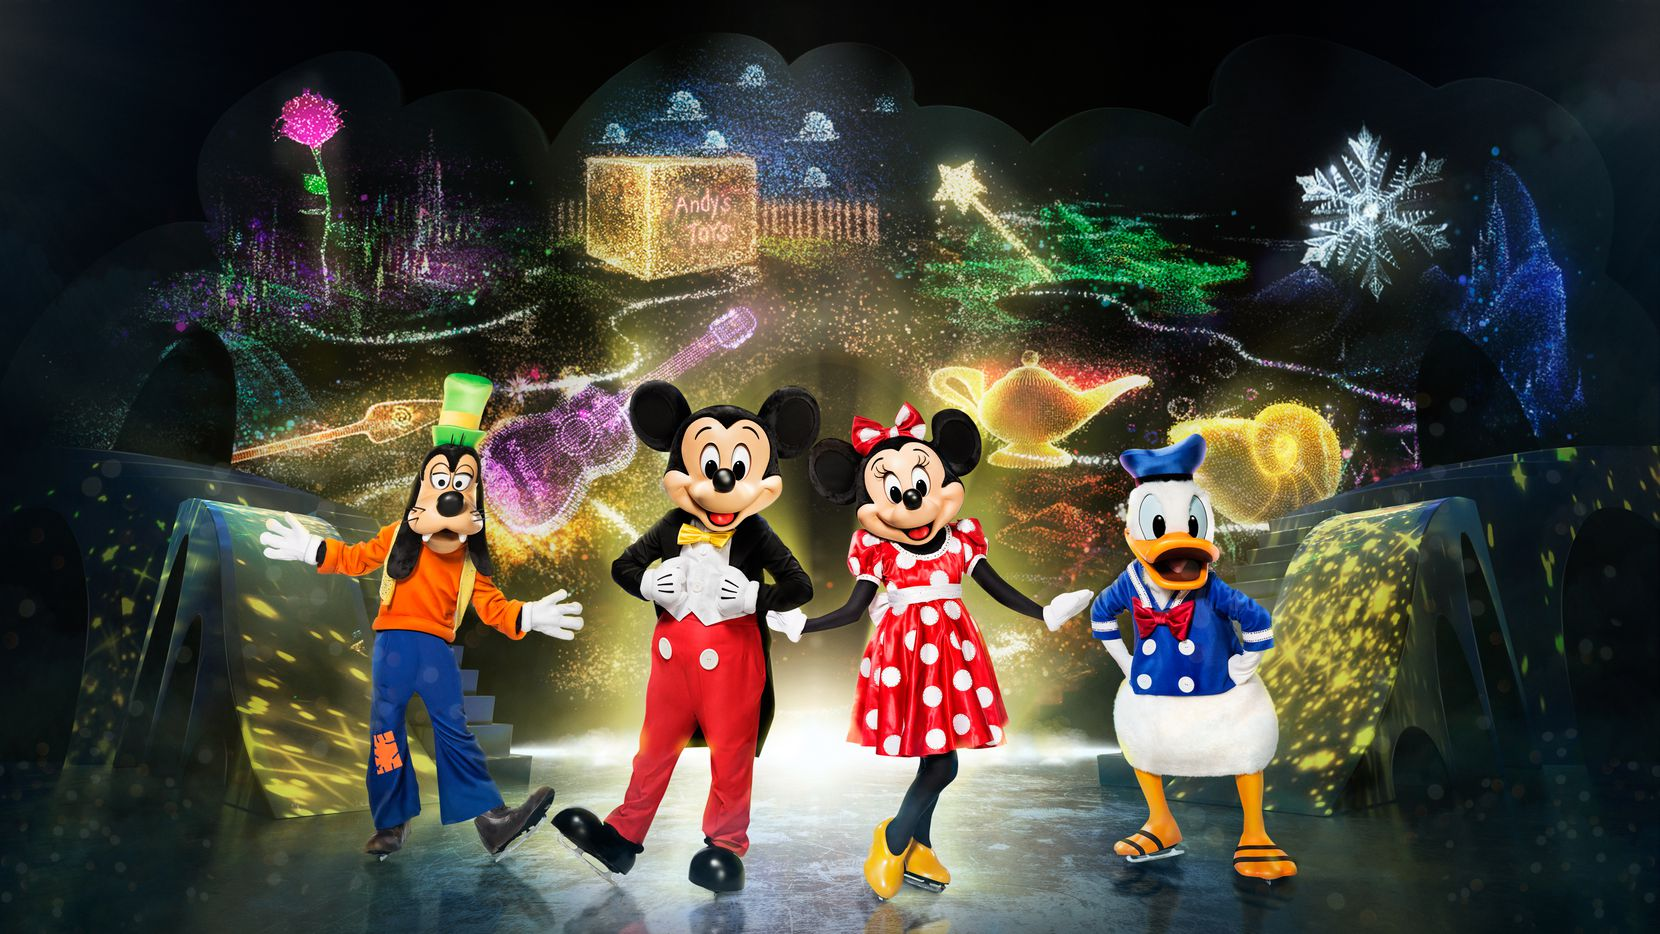 """Disney On Ice"" presents ""Mickey's Search Party"" will be at American Airlines Center in Dallas April 2-4, 2021, and Dickies Arena in Fort Worth April 7-11, 2021."